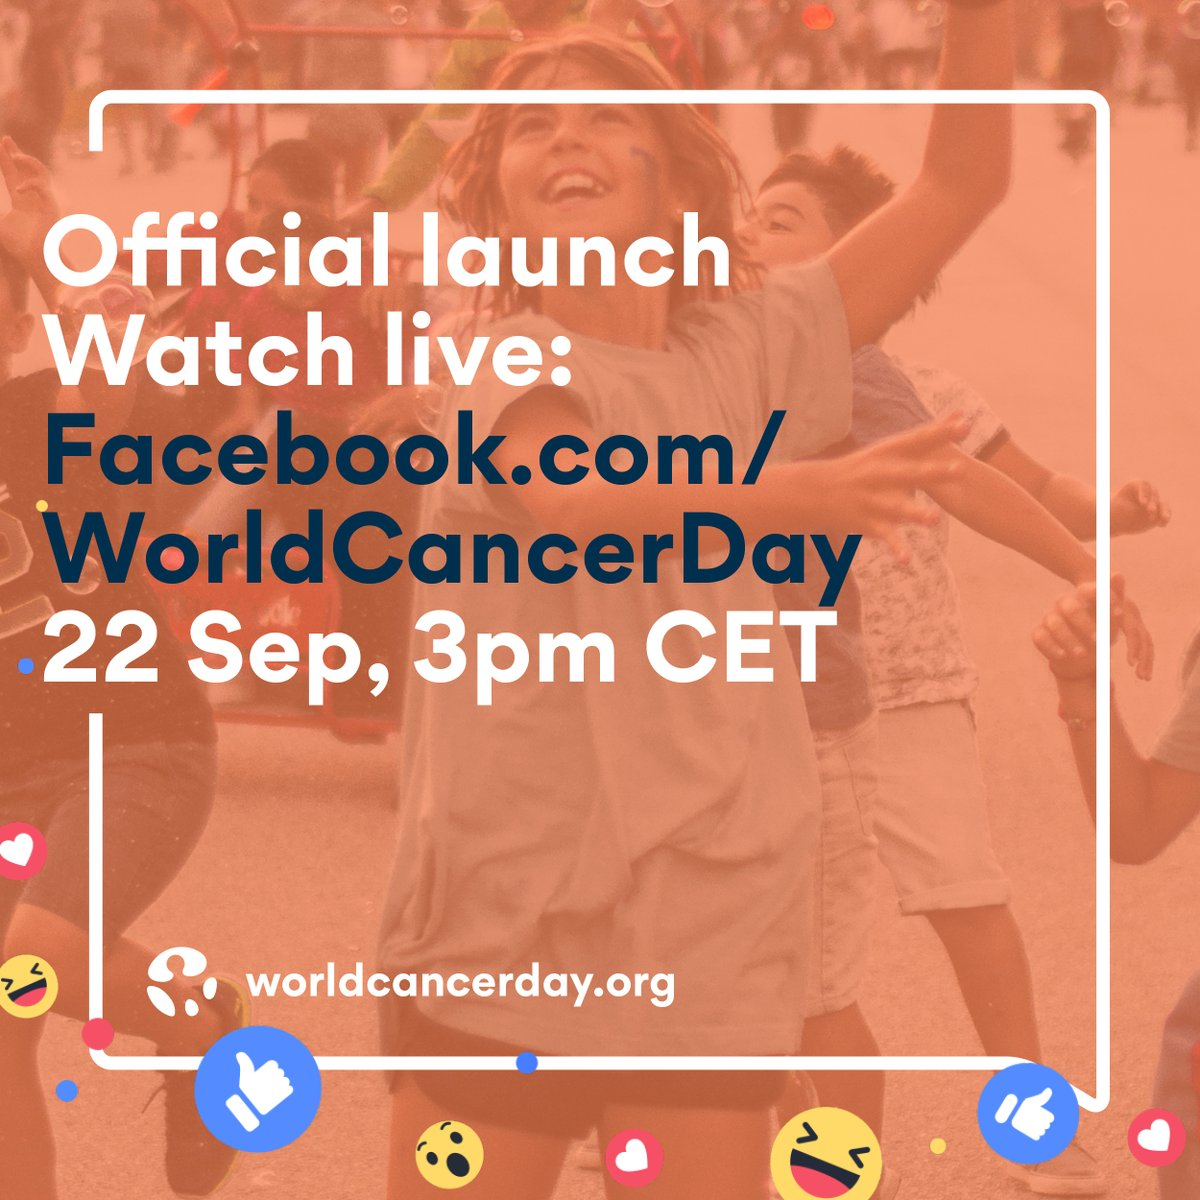 World Cancer Day's Facebook Live broadcast starts in an hour. This is your chance to hear from the team, get inspiration and ideas and have all your questions answered. https://t.co/HD3ABymA09 https://t.co/sJ9Xj9upQl